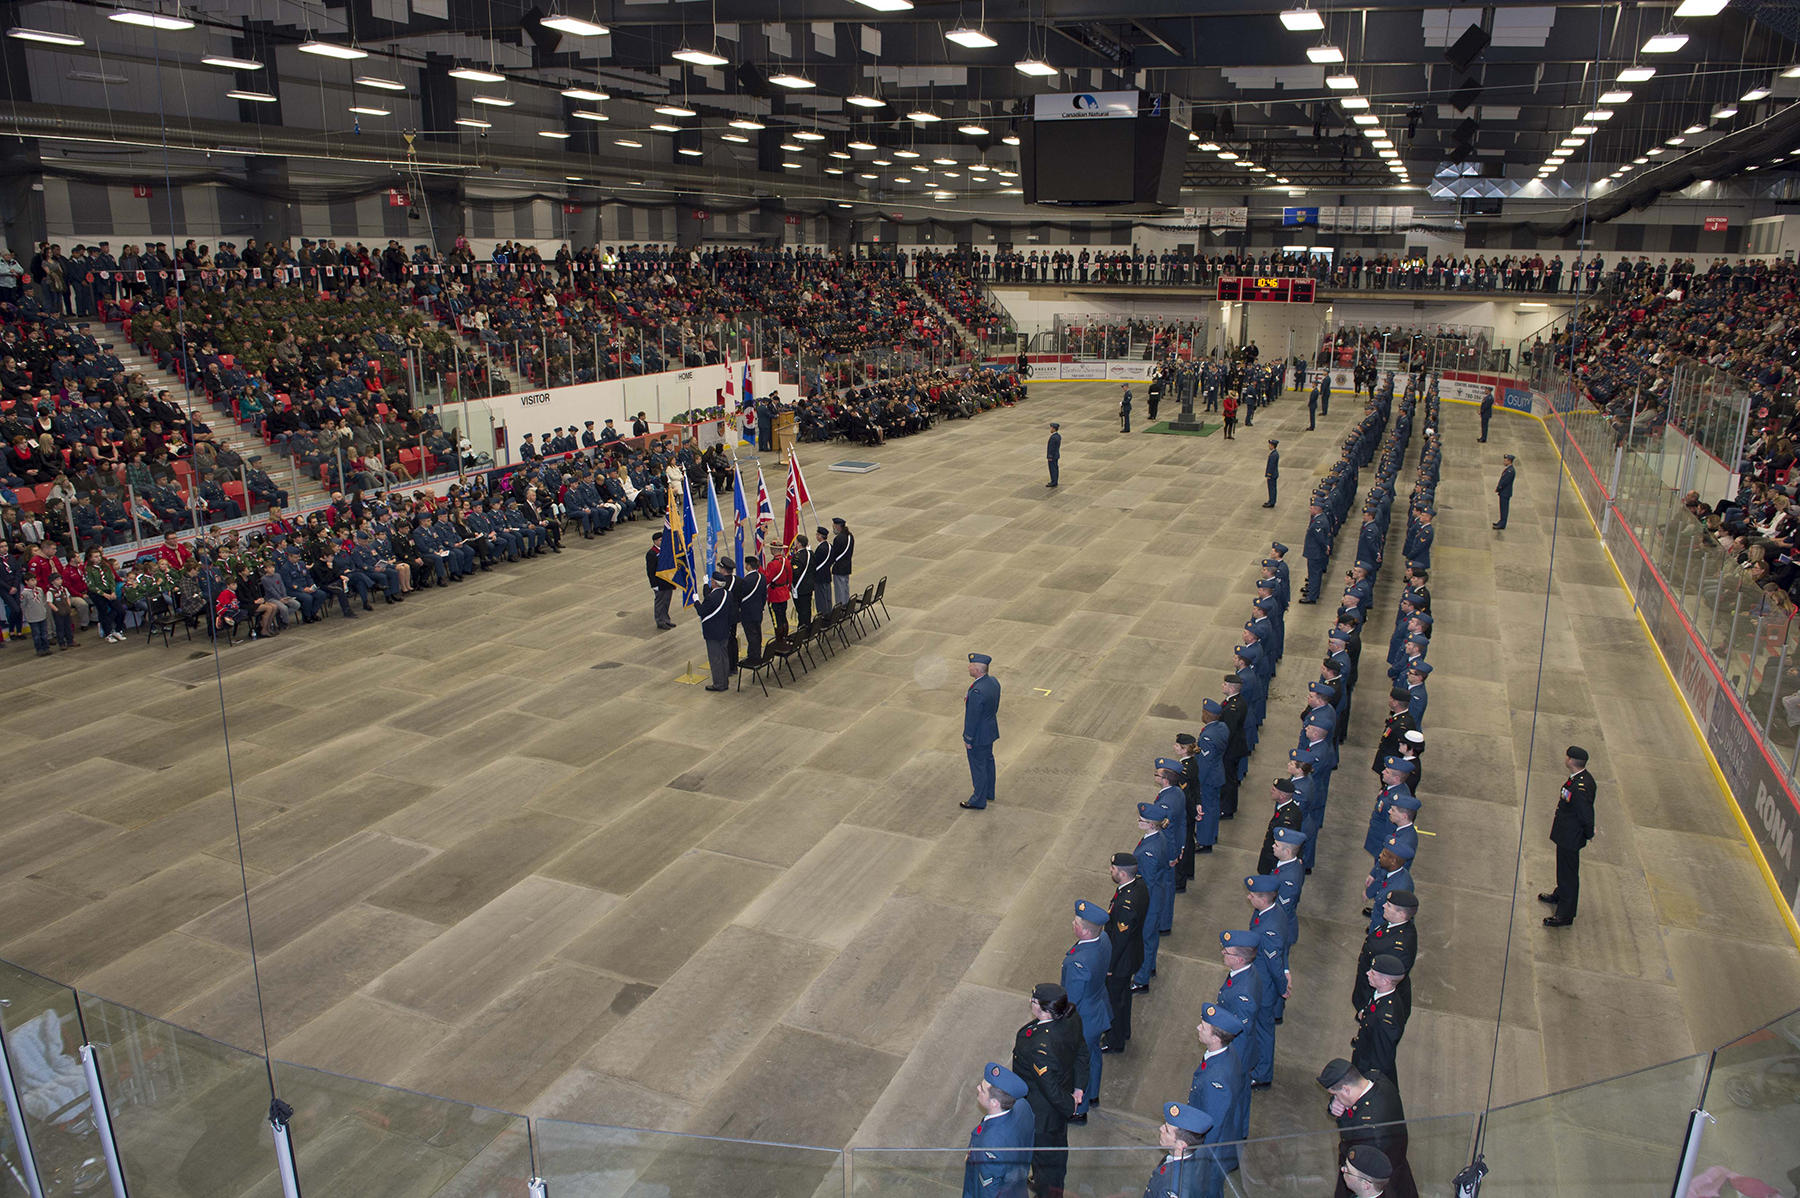 4 Wing Cold Lake, Alberta, personnel and members of the local community honour the memory of fallen Canadian Armed Forces members during the Remembrance Day ceremony held at the Cold Lake Energy Centre on November 11, 2015. PHOTO: Corporal Manuela Berger